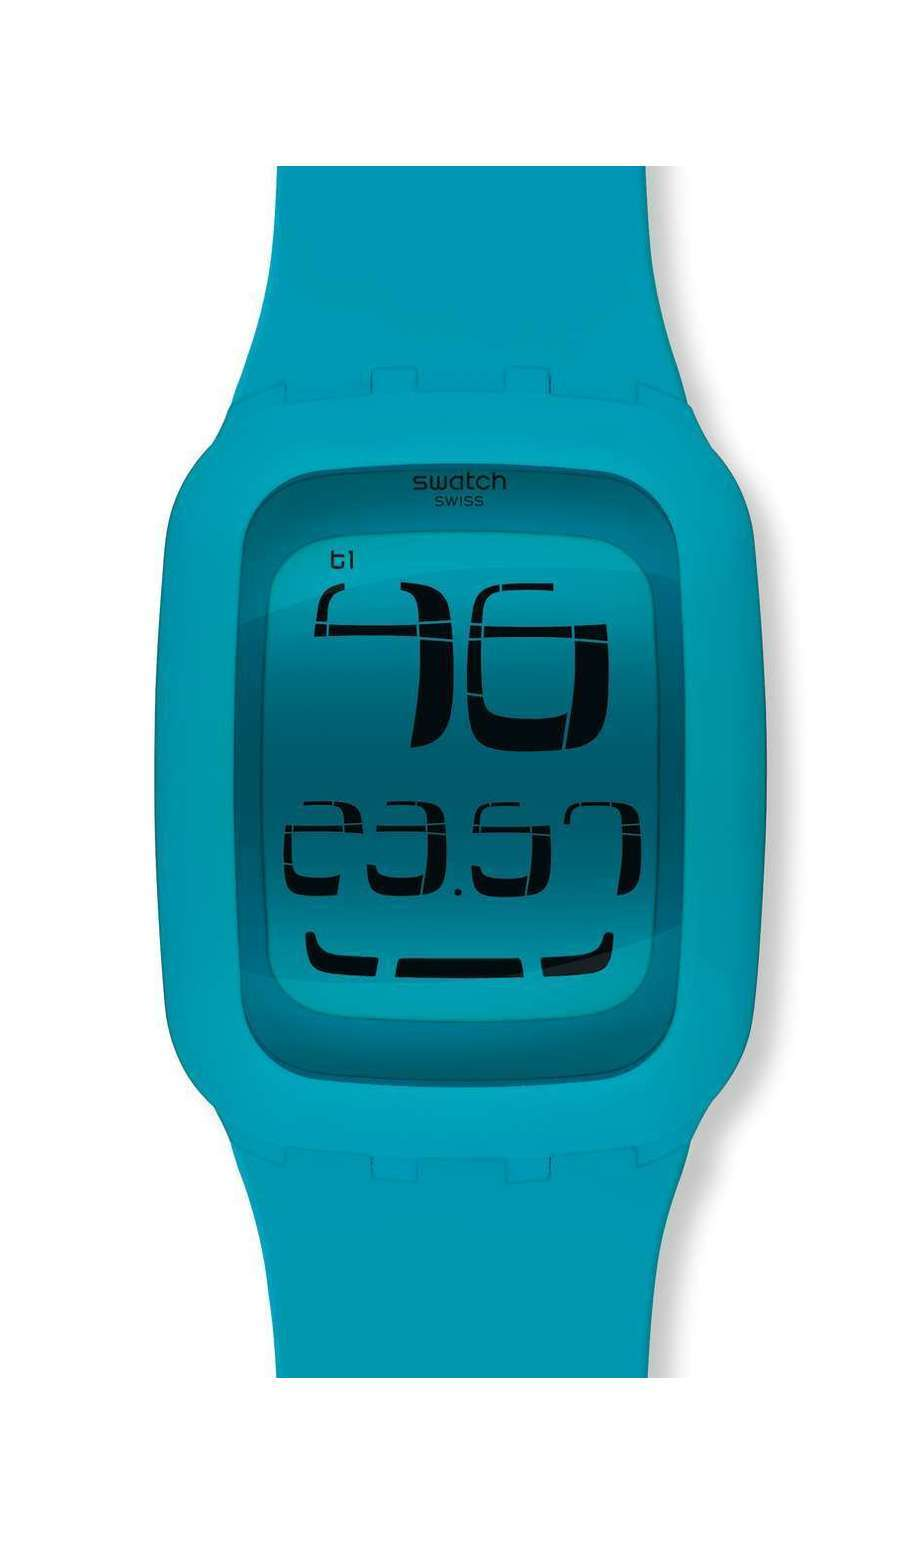 Swatch - SWATCH TOUCH BLUE - 1